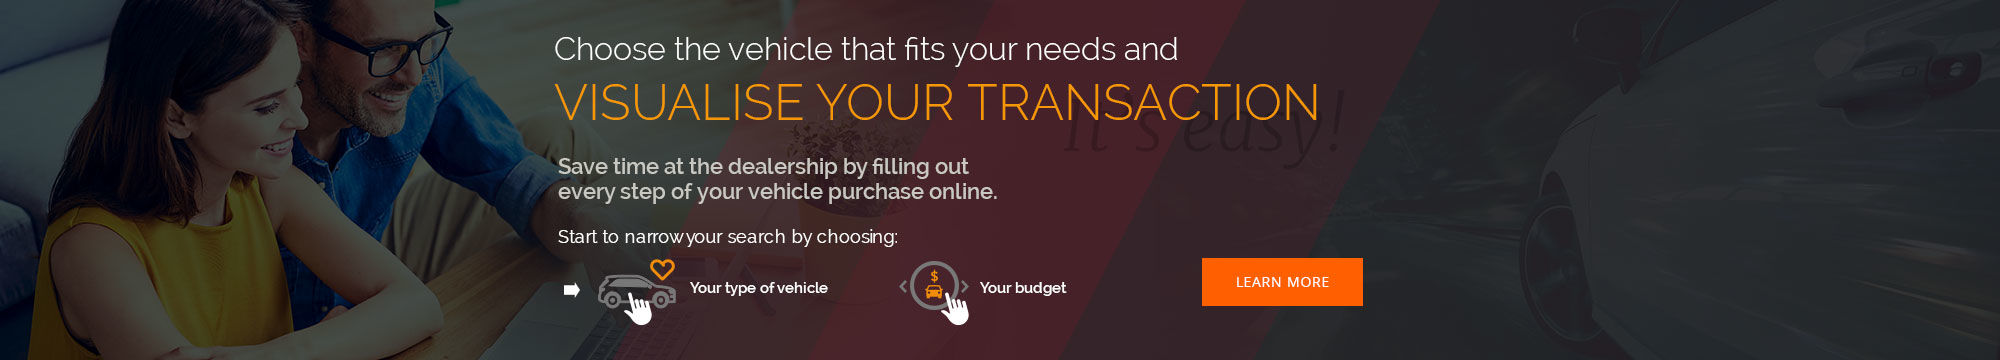 Visualise Your Transaction